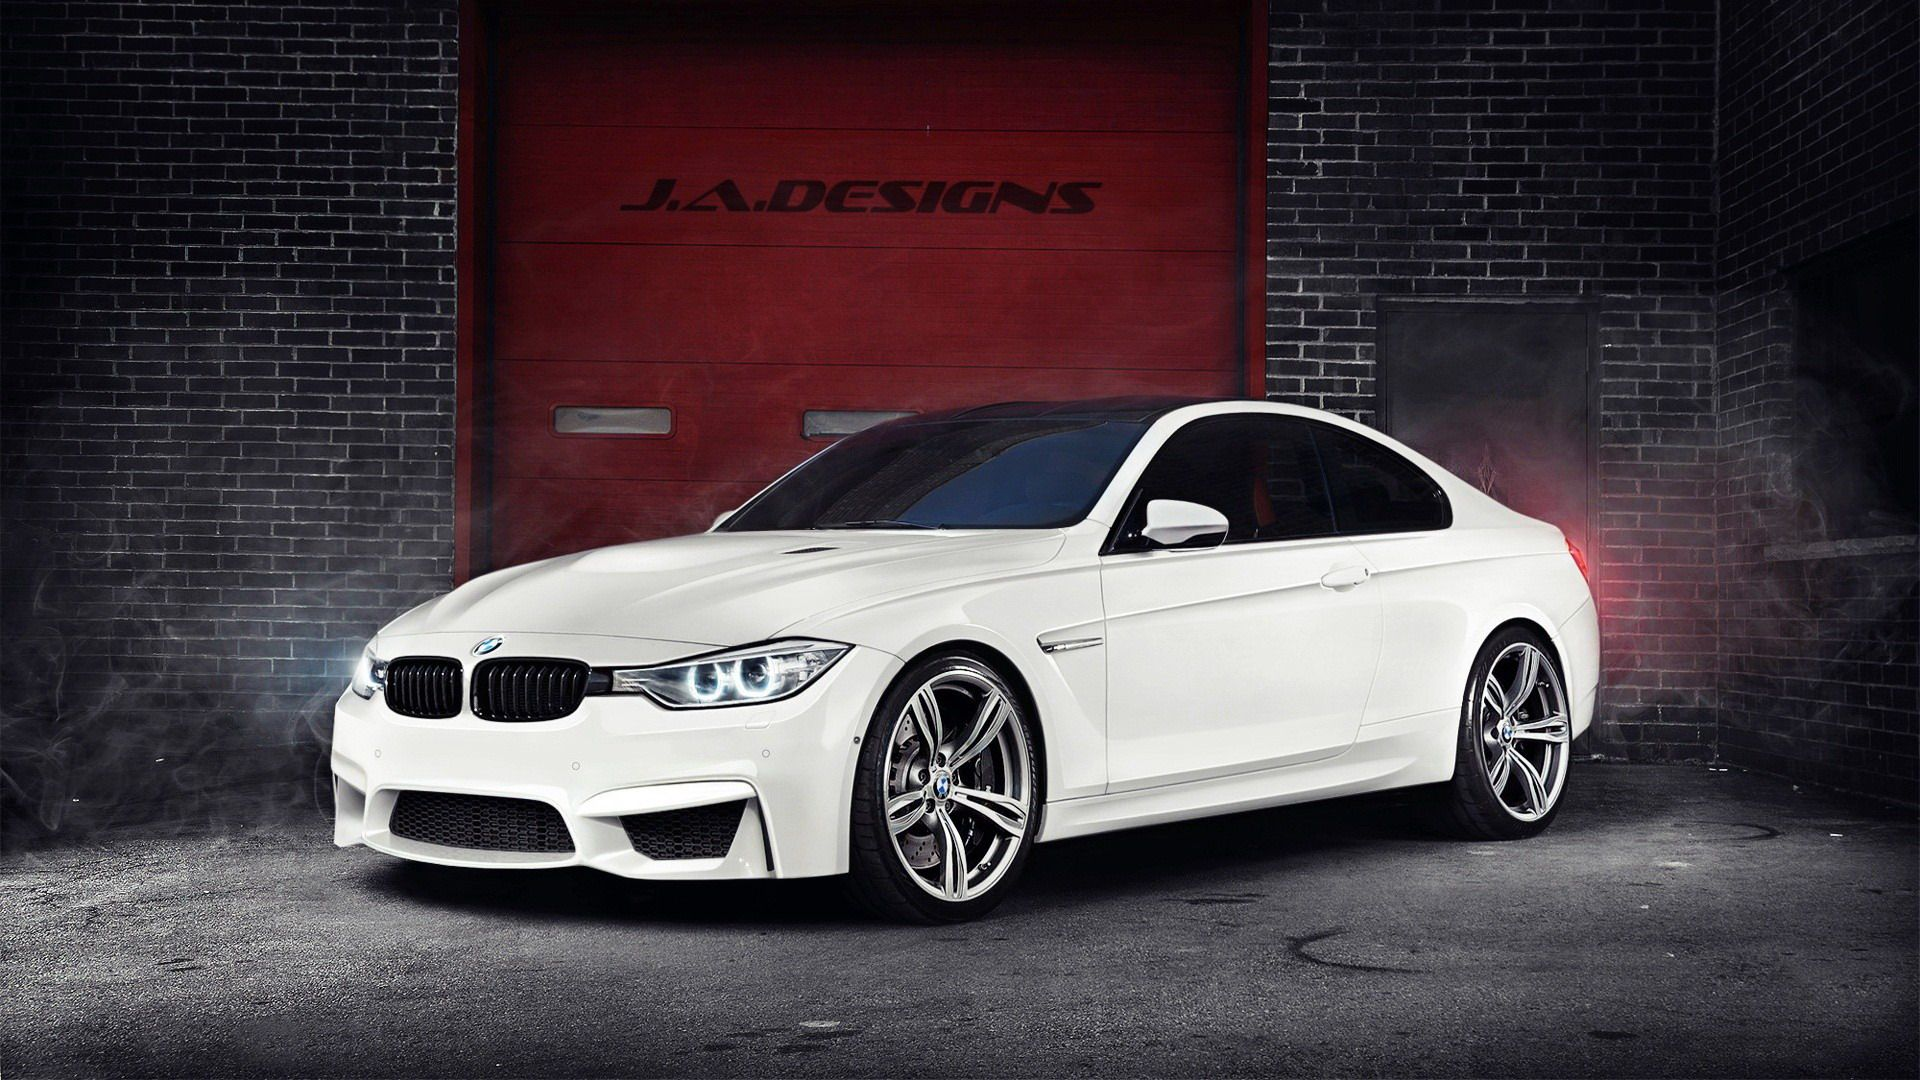 White BMW M3 Wallpapers Is For PC Desktop Download